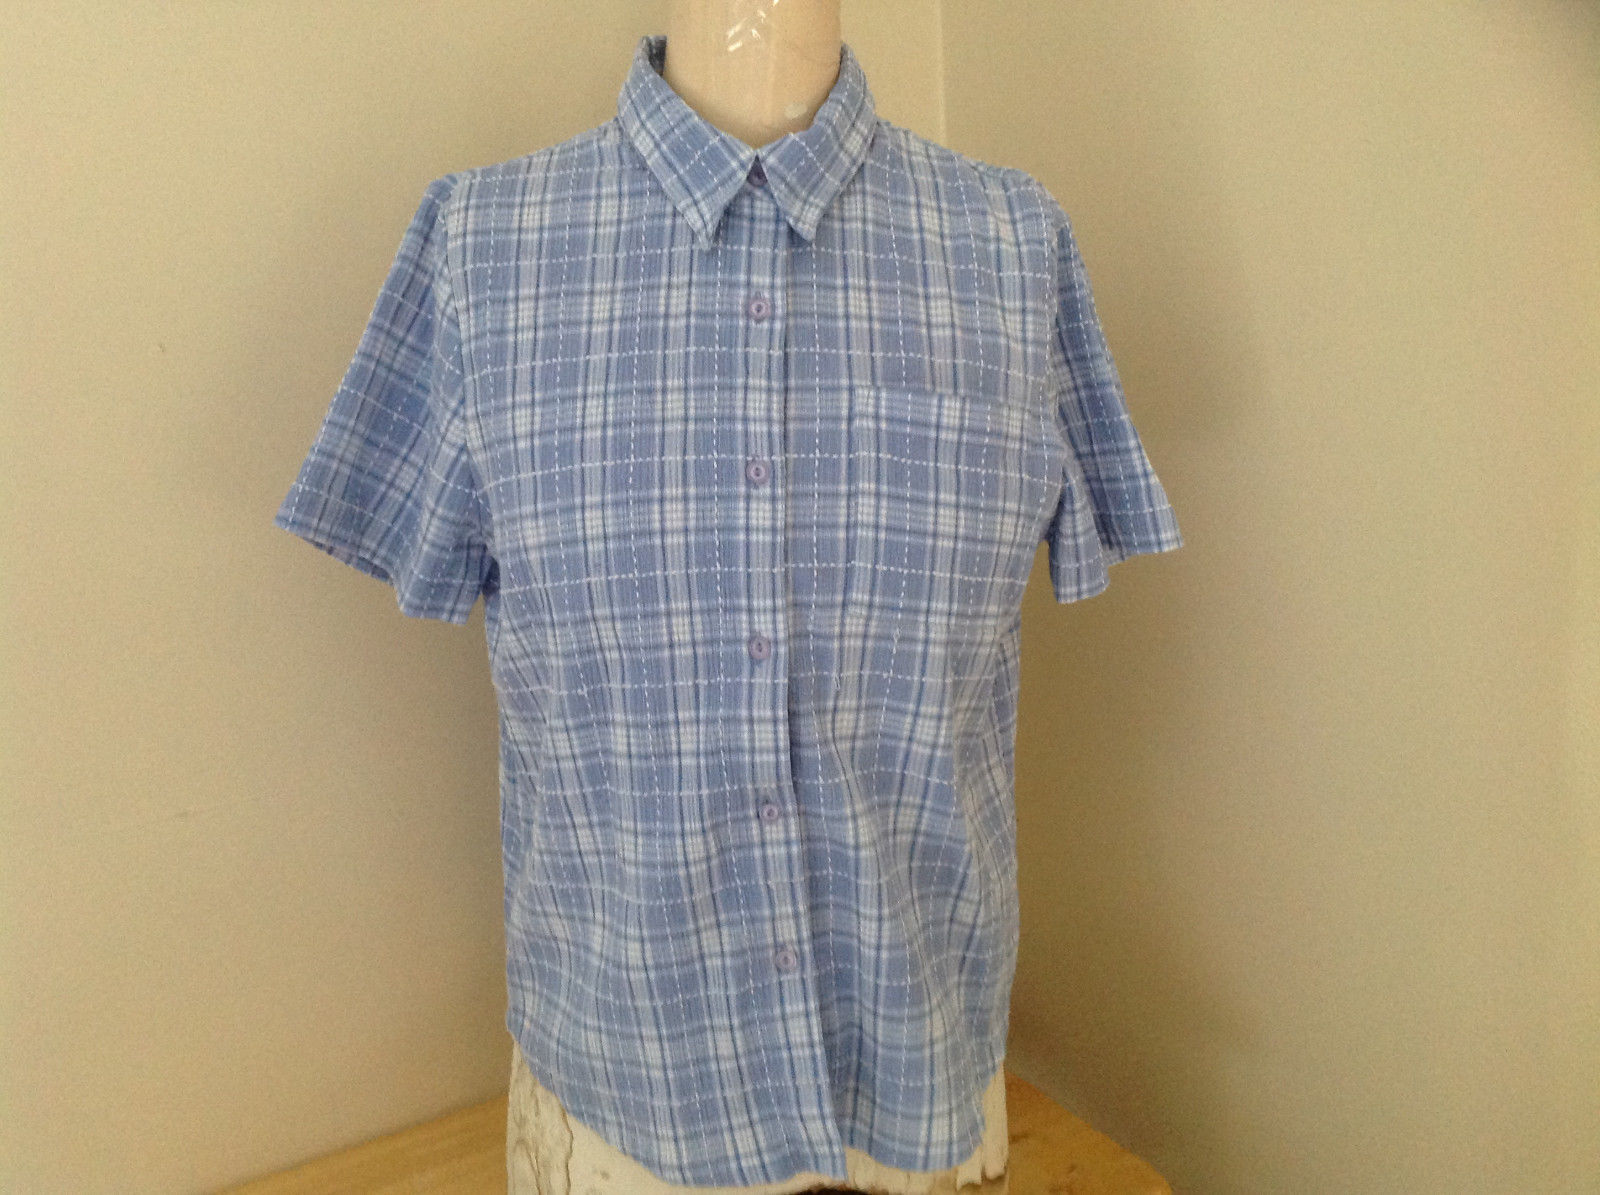 Peri-Wrinkle White Grid Pattern Shirt Made in China Alfred Dunner Size 12P